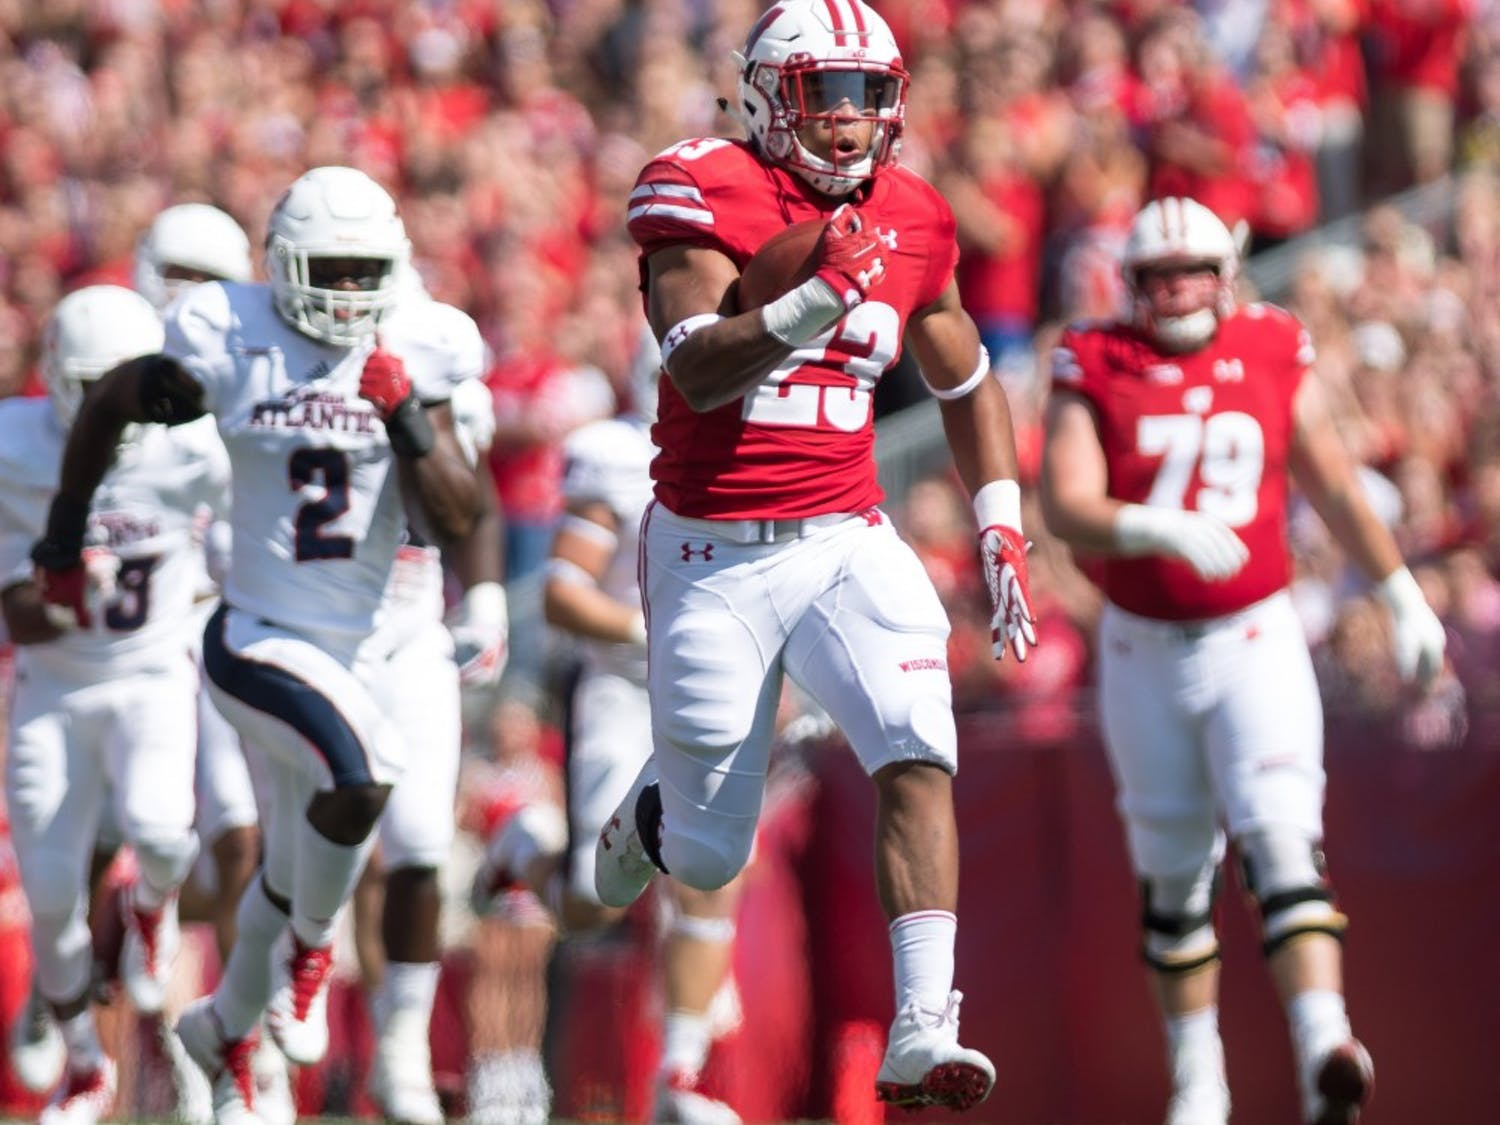 Freshman running back Jonathan Taylor had a historic day on the ground, finishing UW's win over Florida Atlantic with 223 yards and three touchdowns.